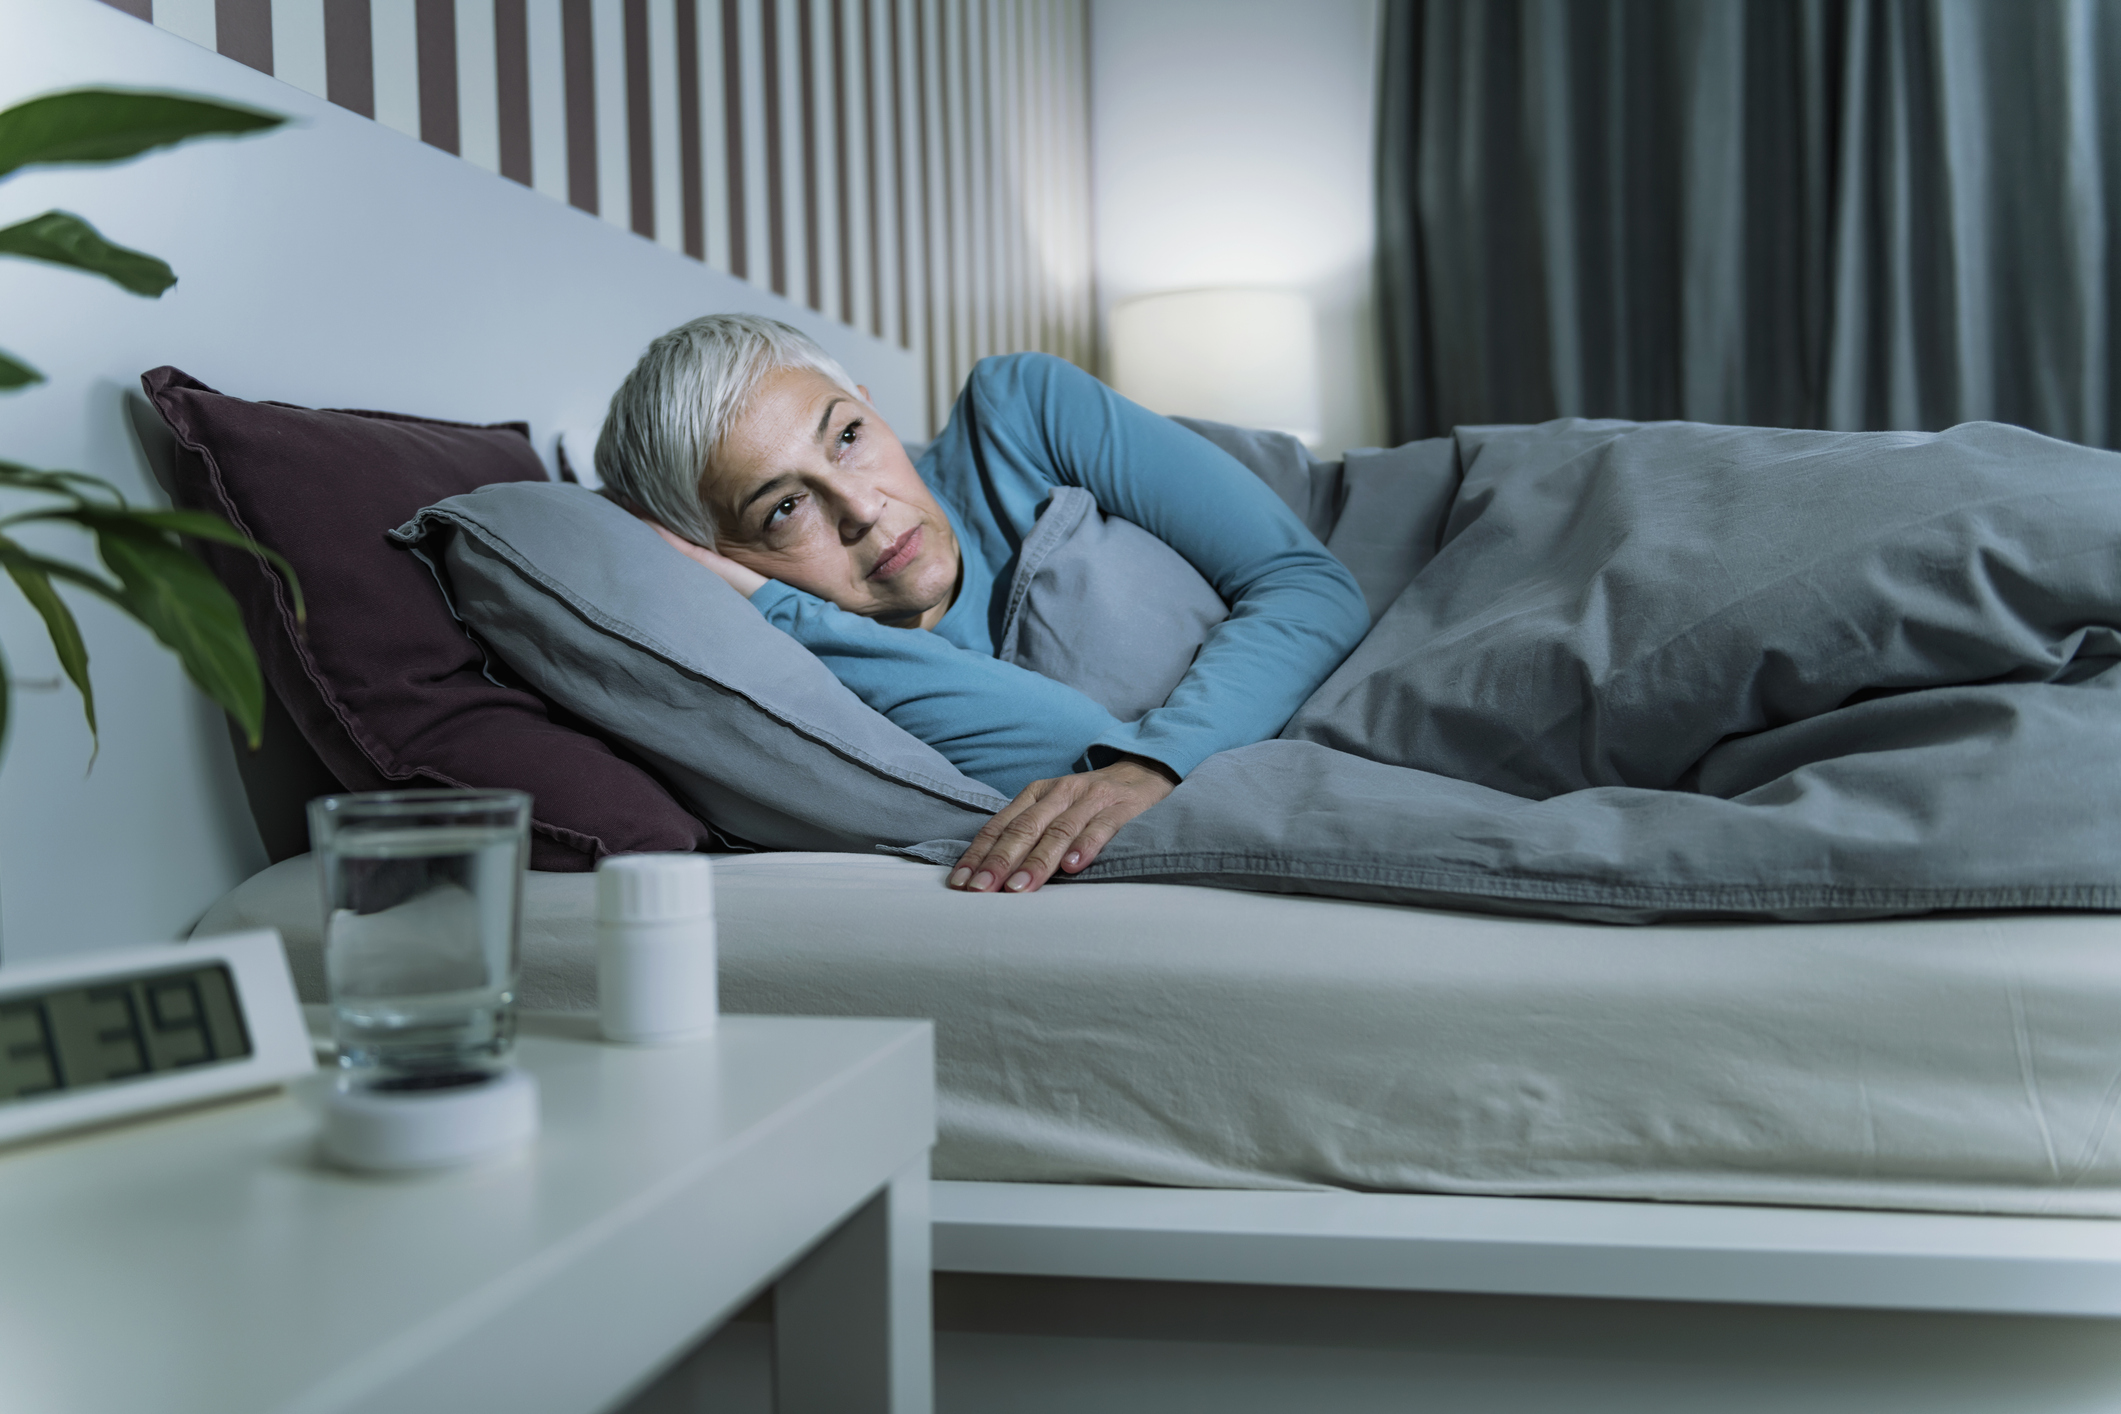 Sleep deprivation nearly doubles dementia risk